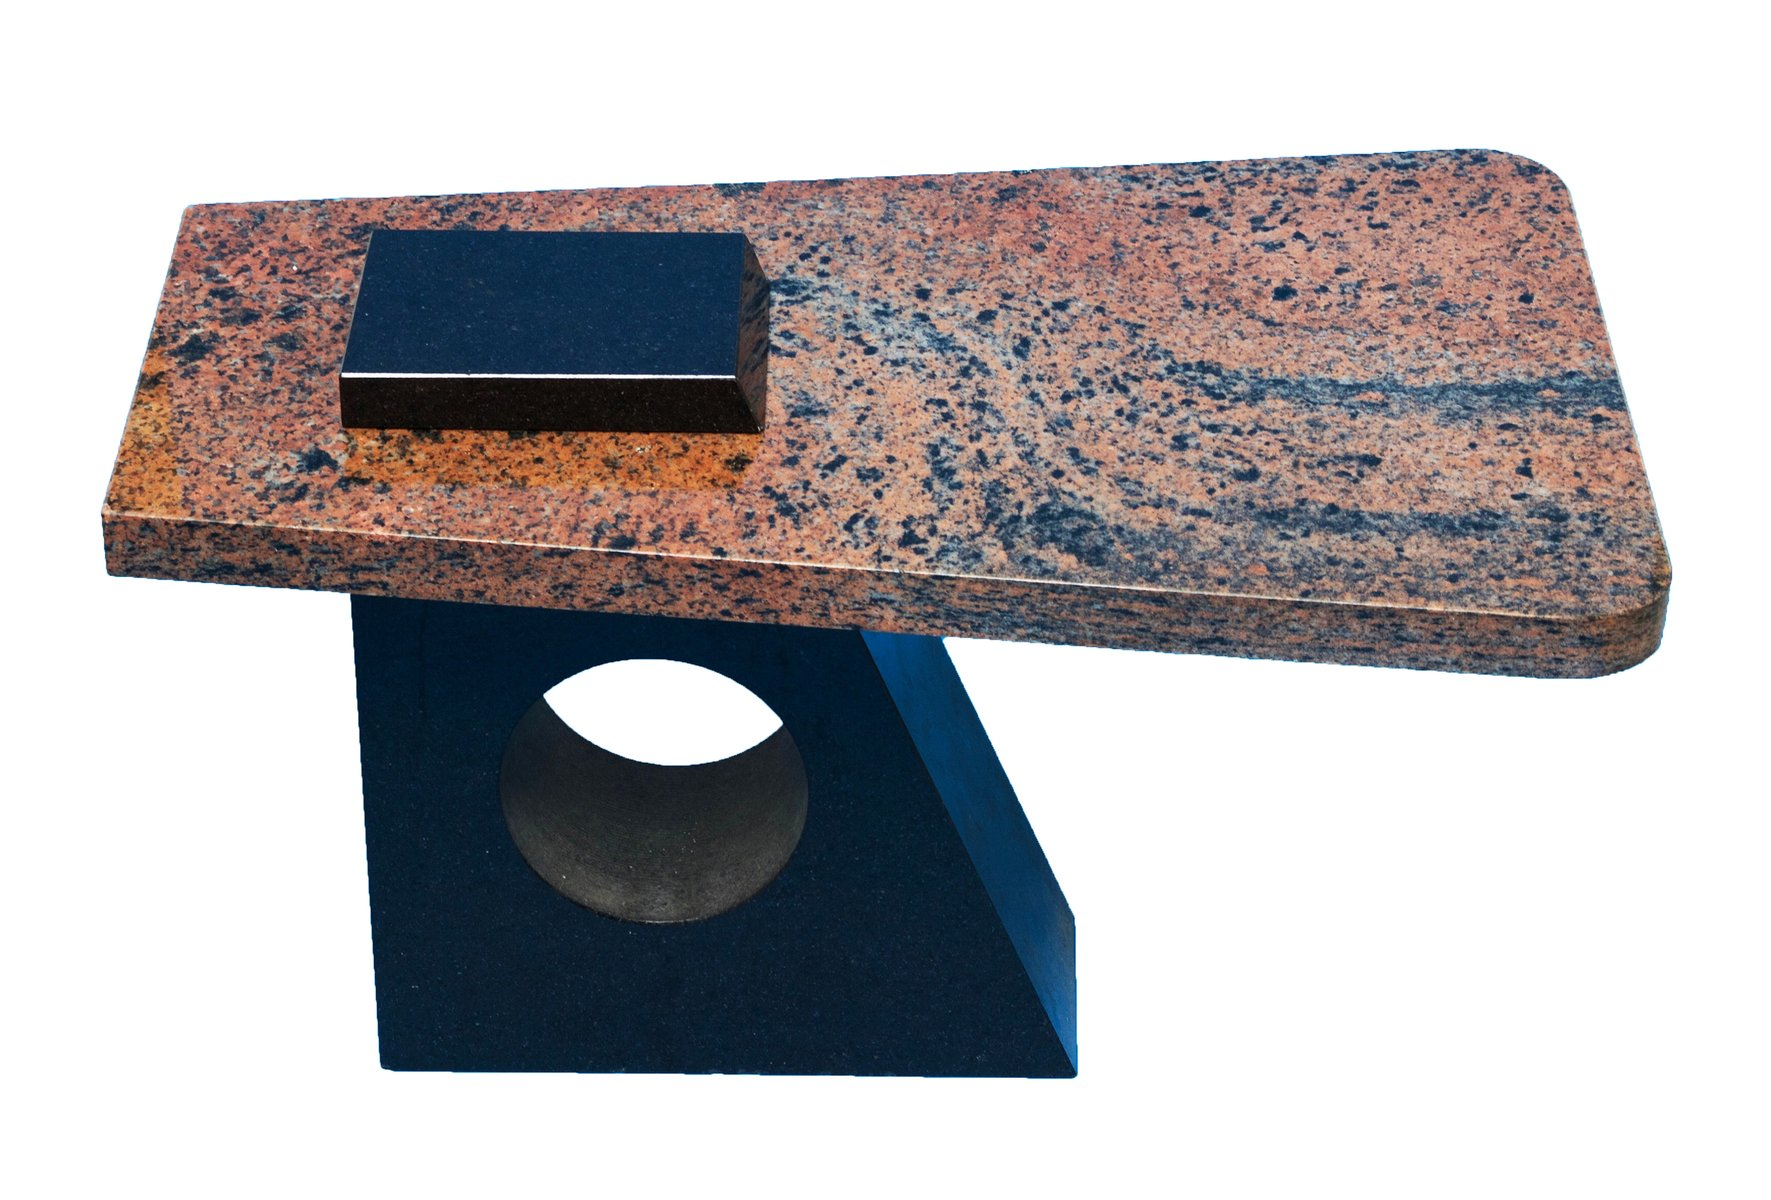 French Variegated Pink And Black Marble Table, 1980s